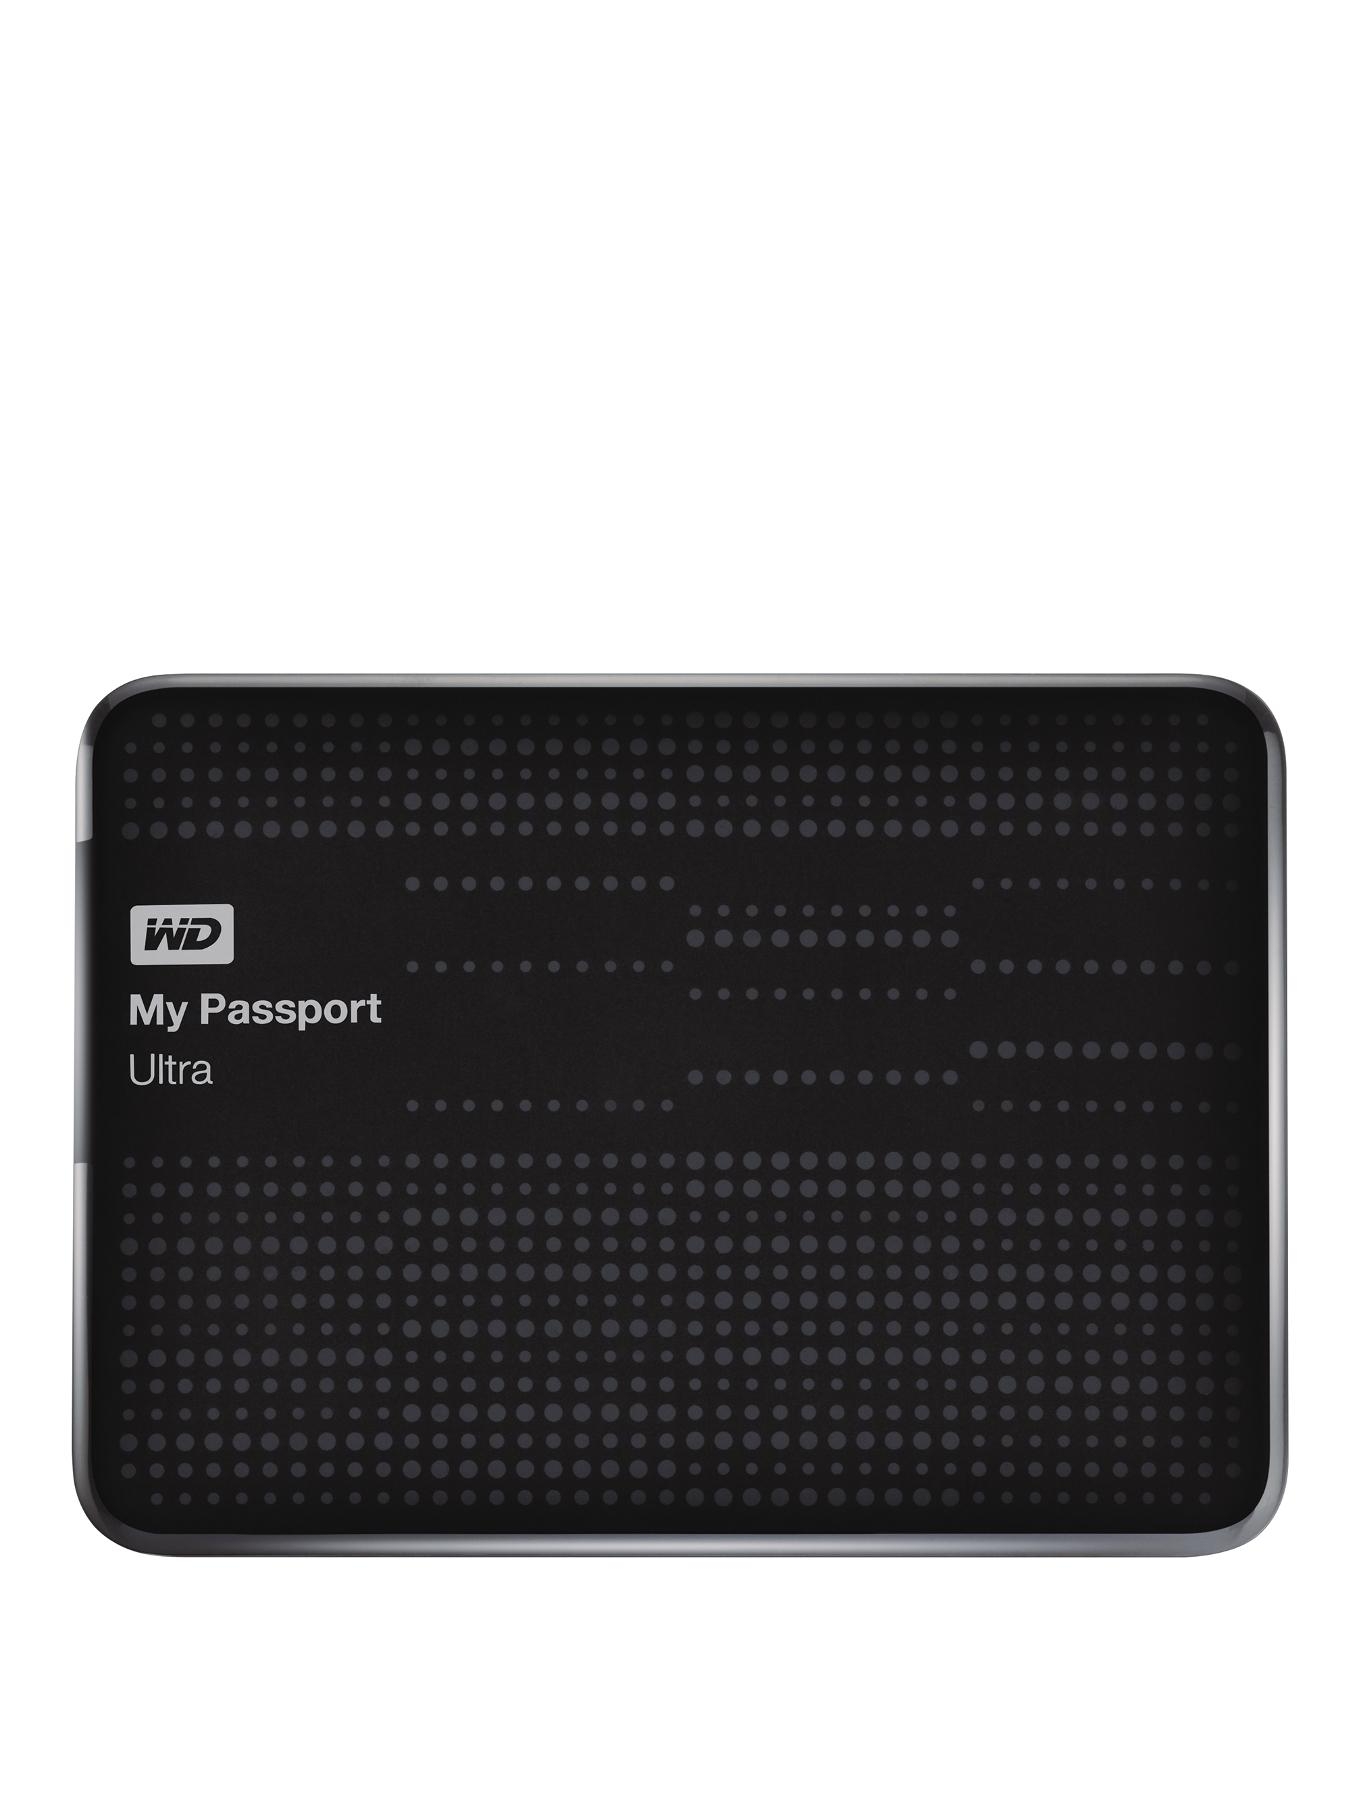 2Tb My Passport Ultra Portable Hard Drive - Black